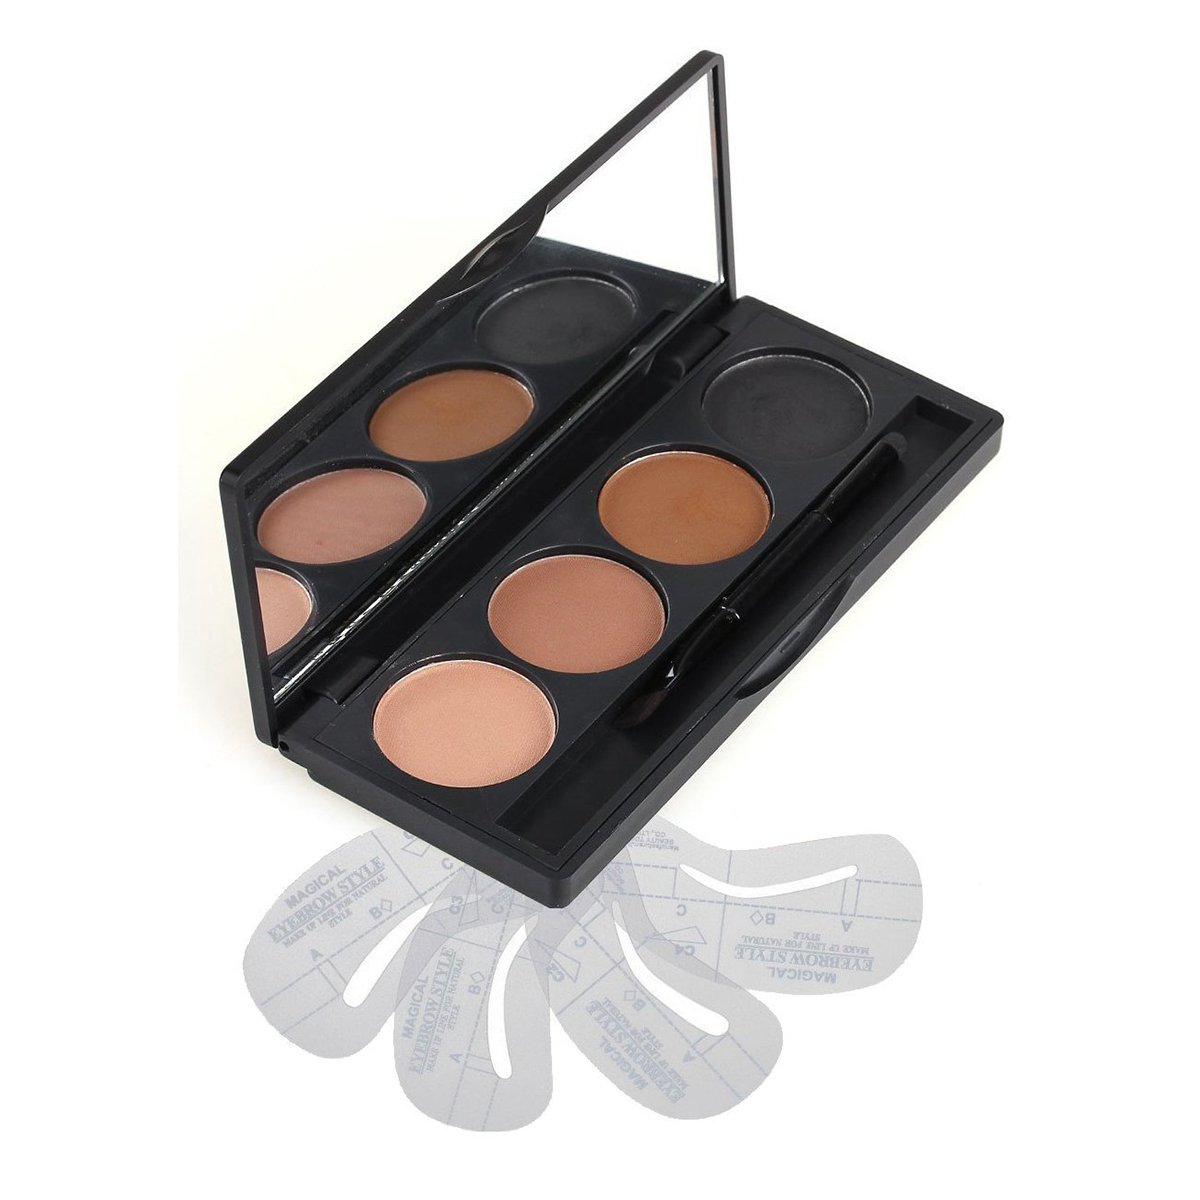 Vodisa 3 Colour Eyebrow Makeup Powder Kit-Eye Brow Tint Palette - Beauty Cosmetics Light Brown Brow Dye for Nose Shaded-Professional Make Up Eye Brows Filler+4 Eyebrow Shaping Stencils+ Eyebrow Brush